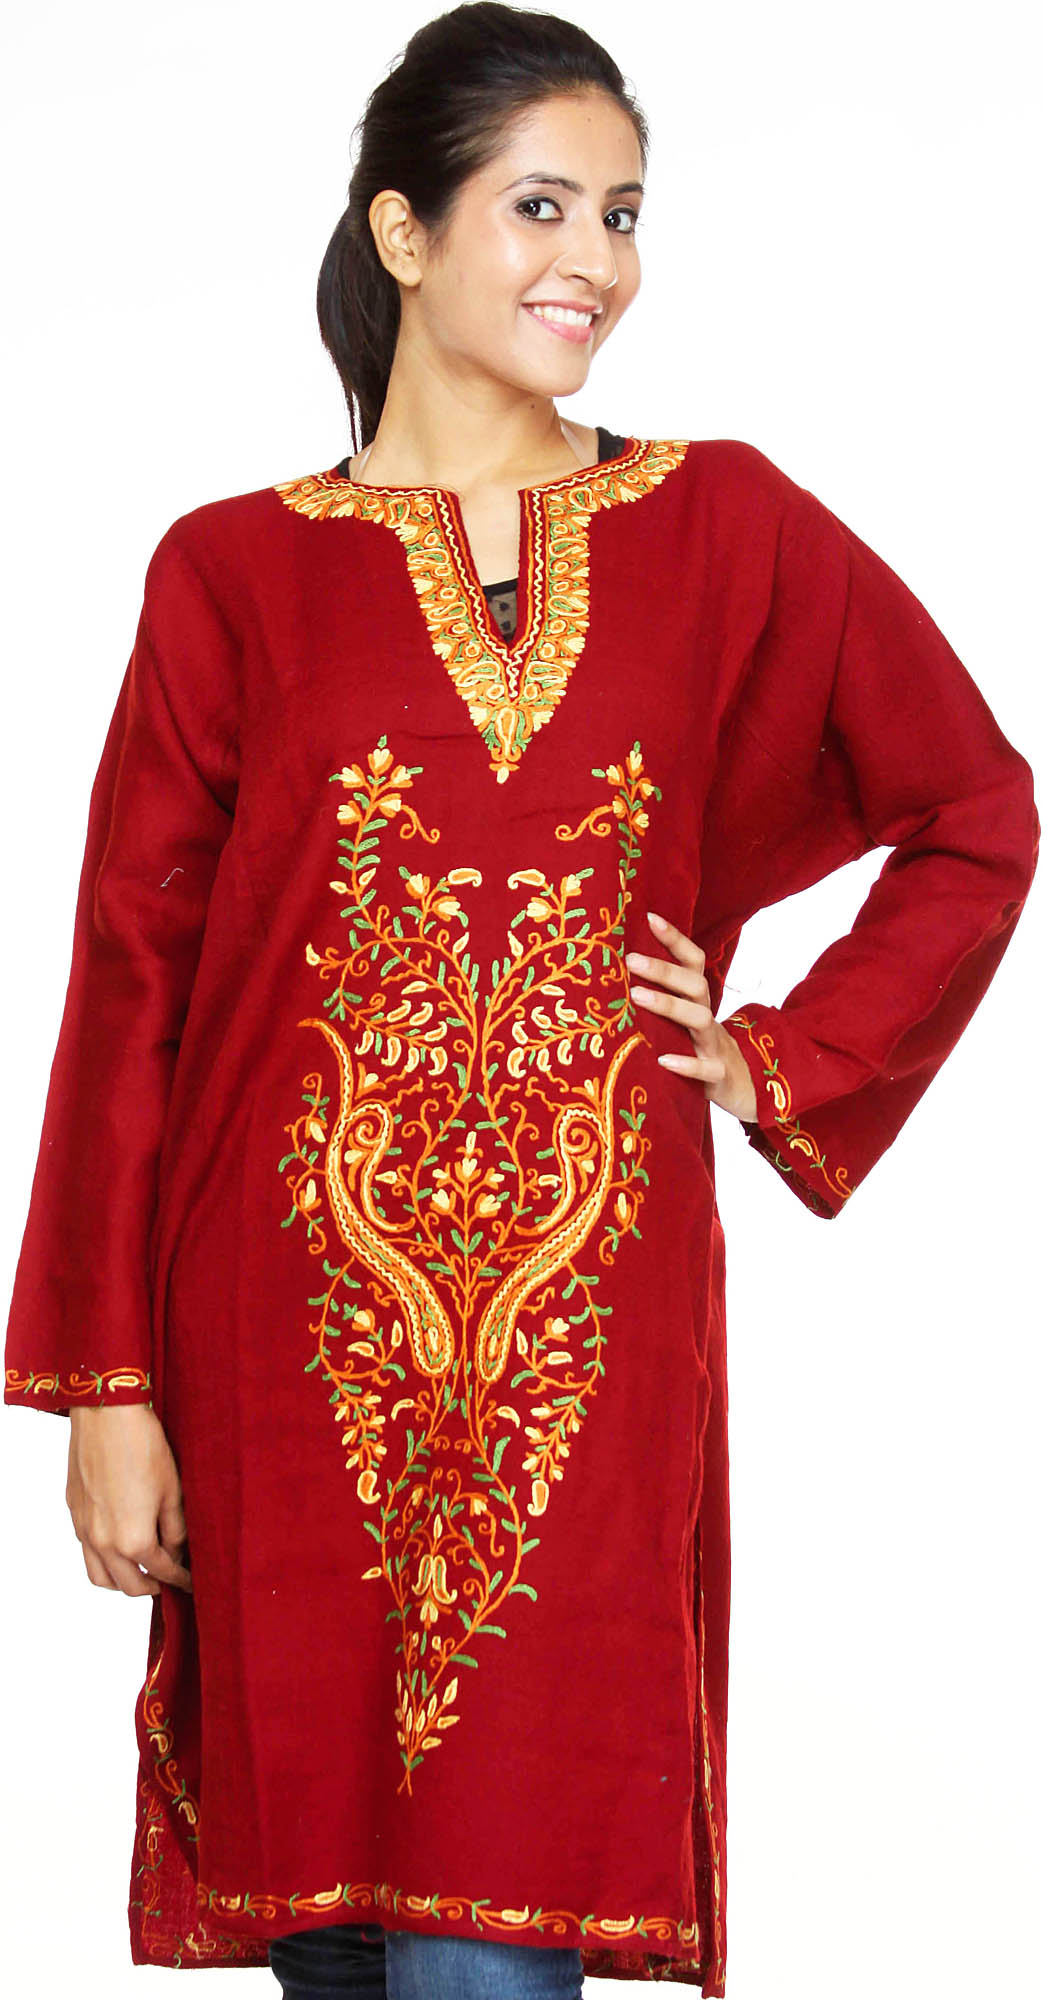 Maroon Kashmiri Phiran With Hand Embroidery On Front